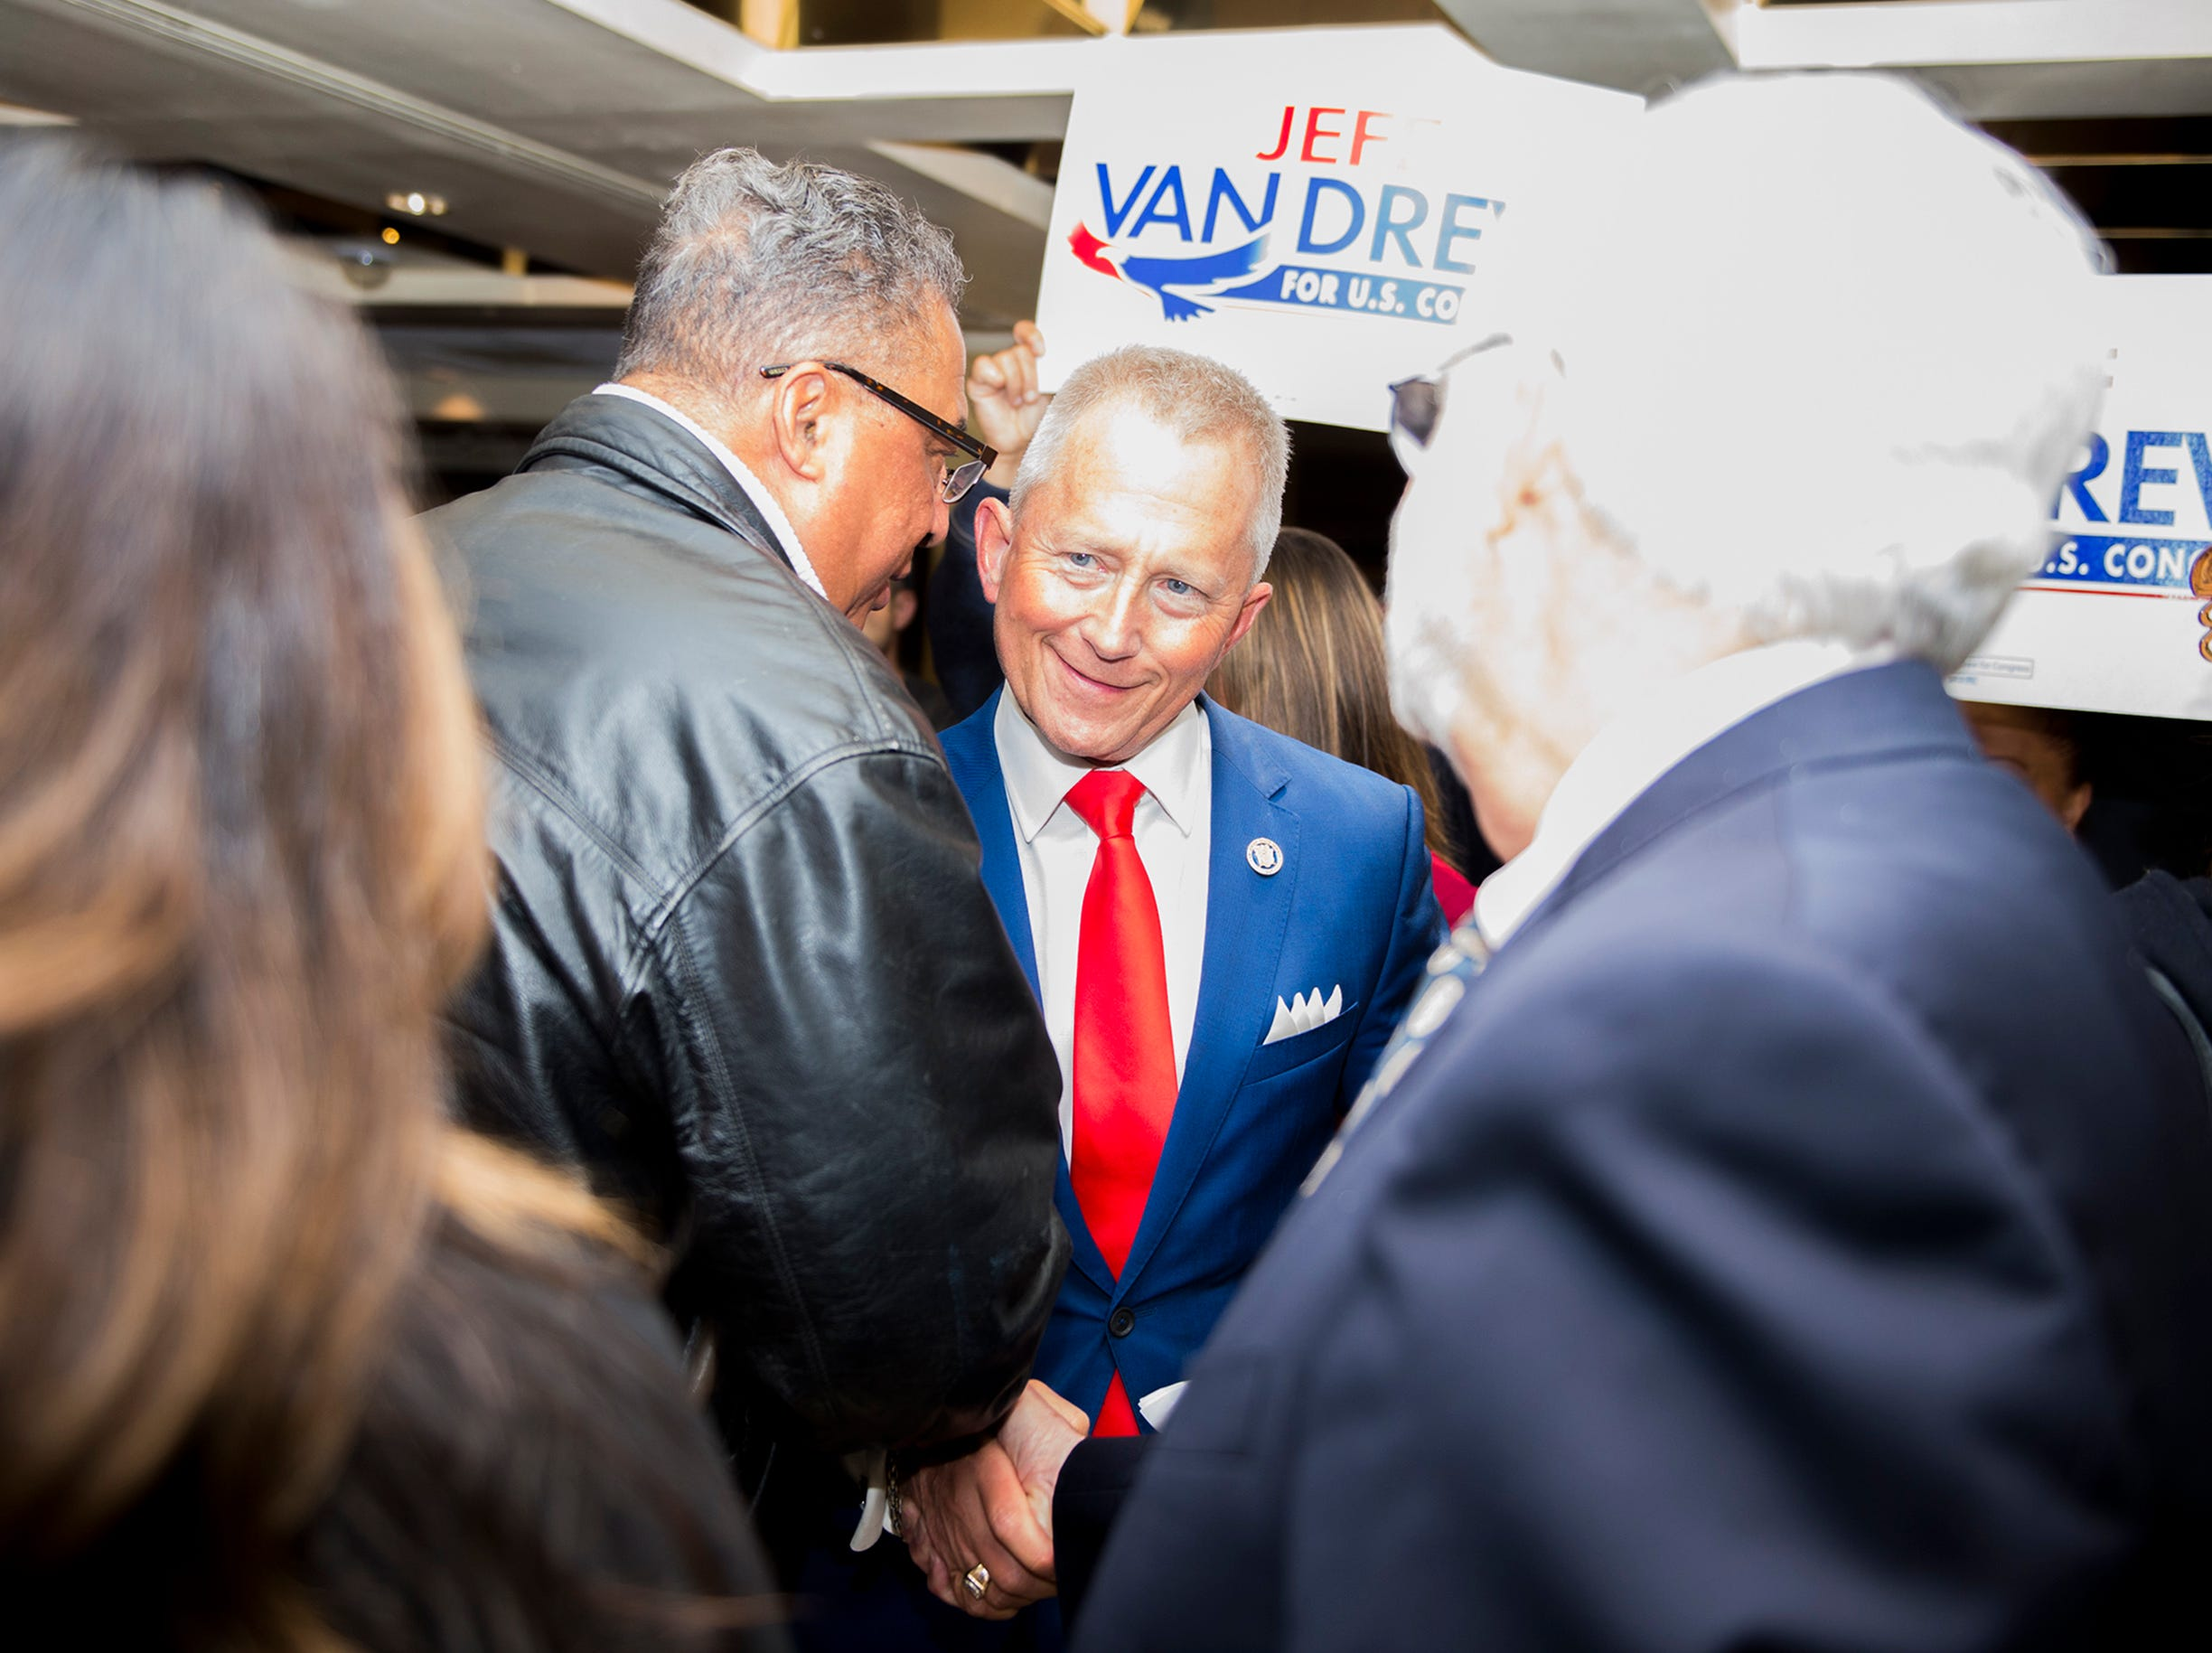 NJ Sen. Jeff Van Drew is greeted by supporters following a victory Tuesday, Nov. 6, 2018 at The Claridge Hotel in Atlantic City, N.J.